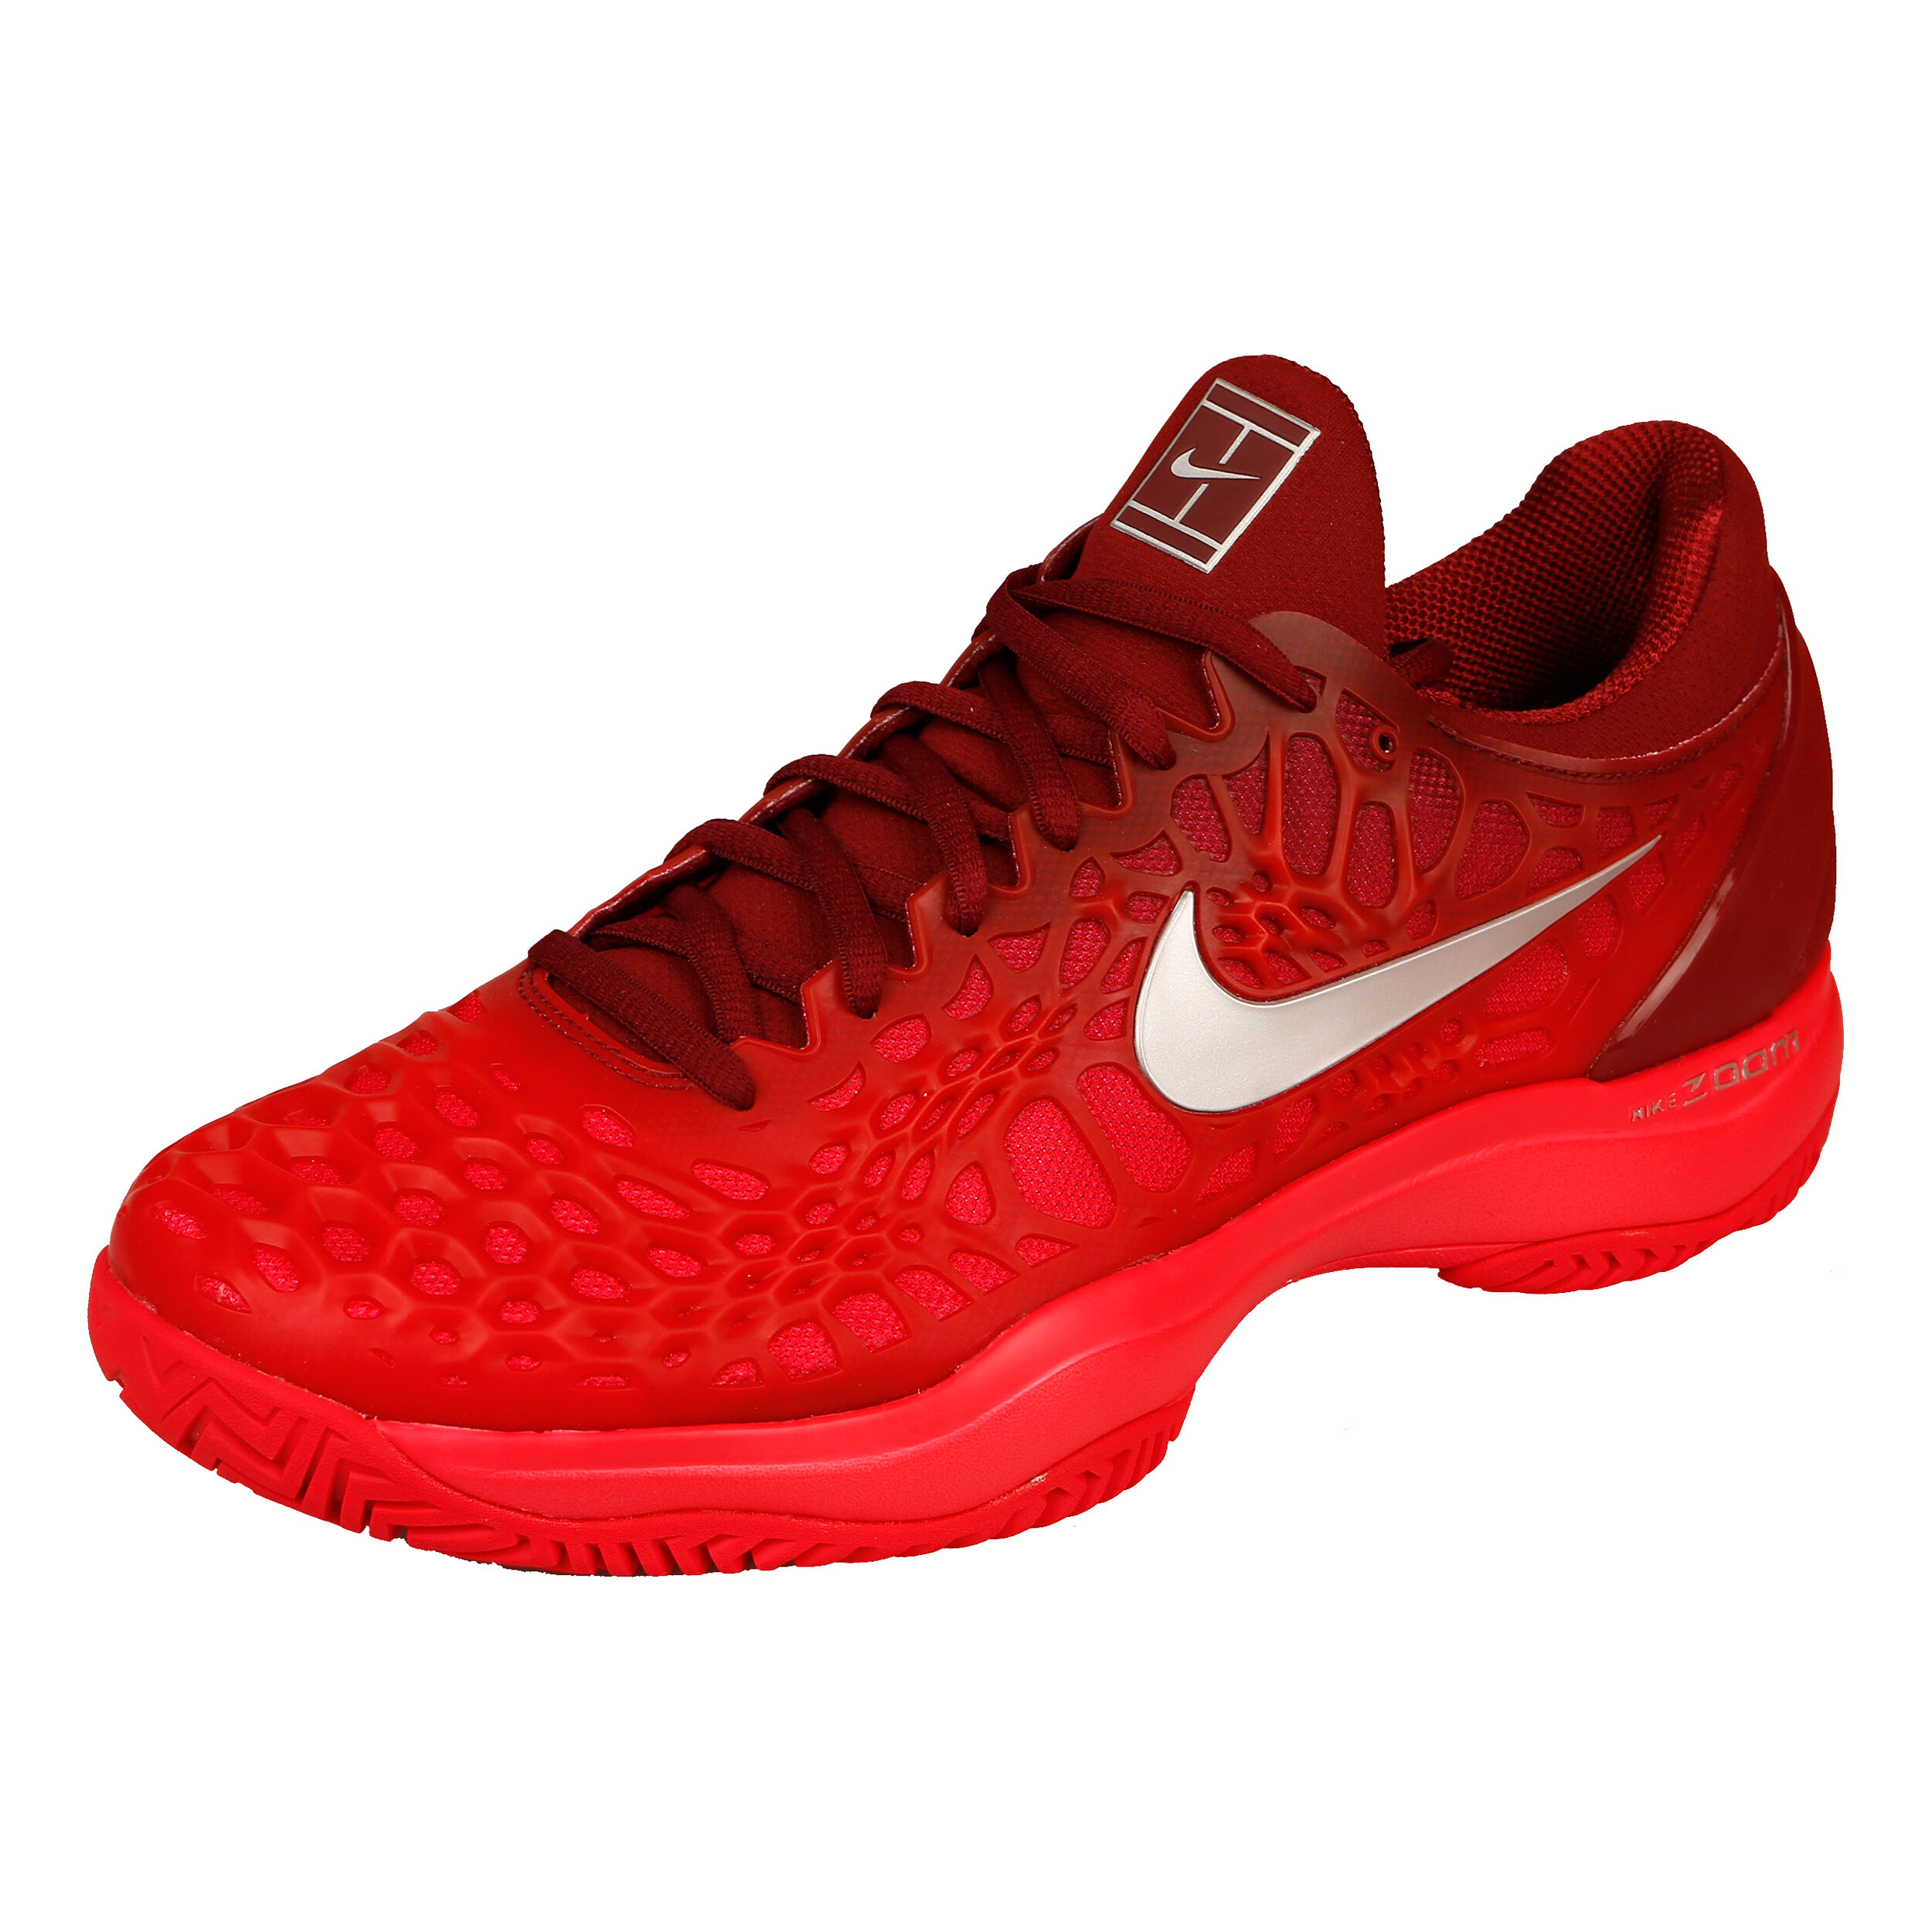 Nike Zoom Cage 3 Chaussures Toutes Surfaces Hommes Rouge